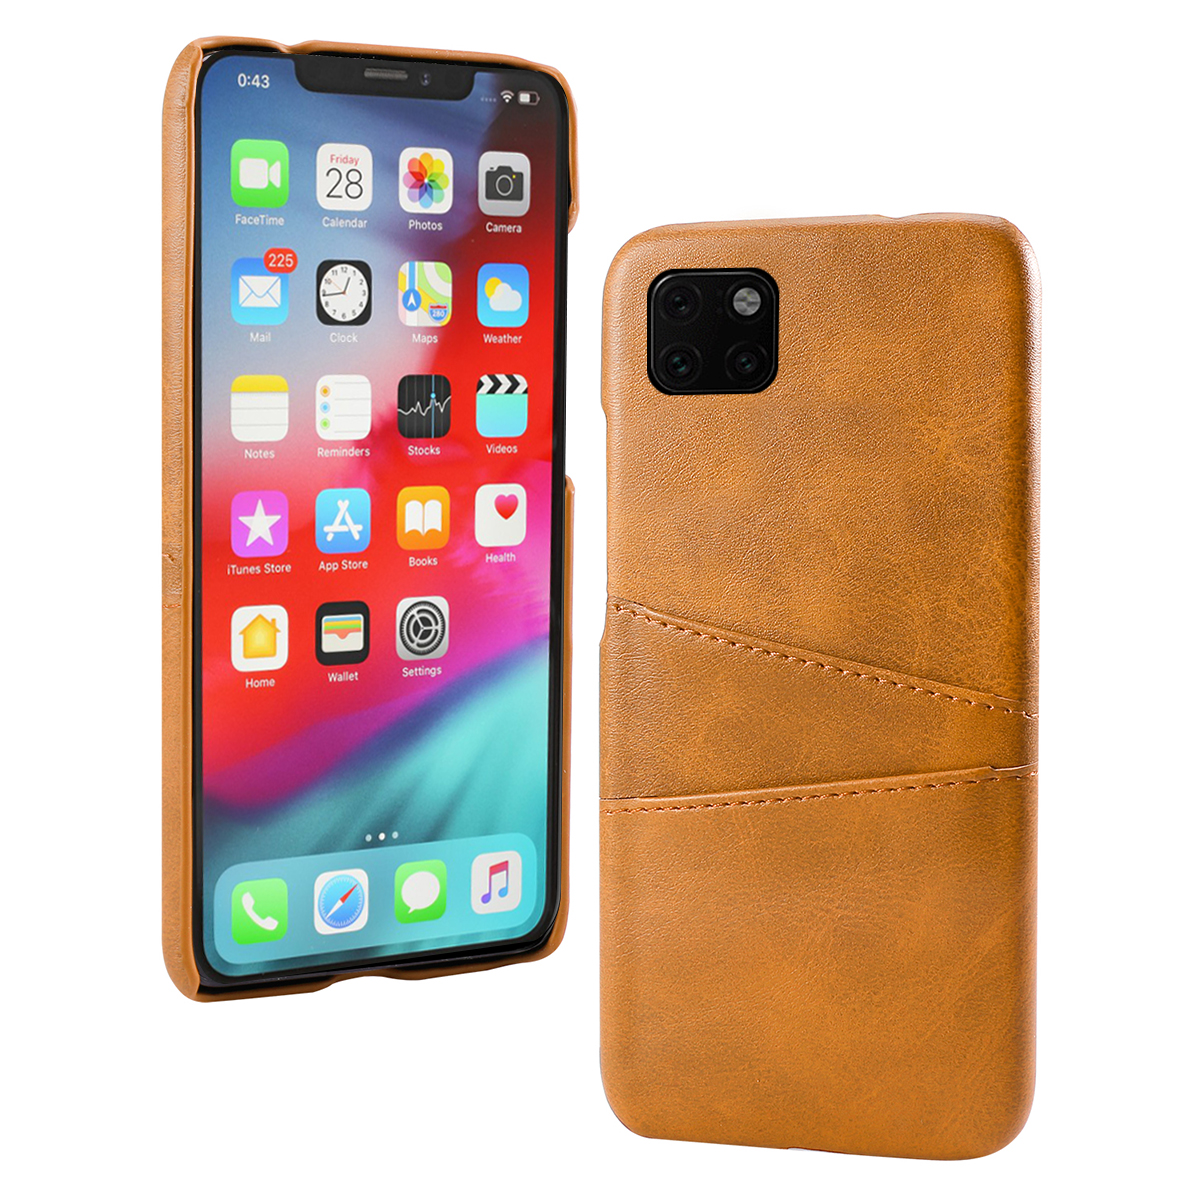 Torubia Leather Card Holder Case for iPhone 11/11 Pro/11 Pro Max 1